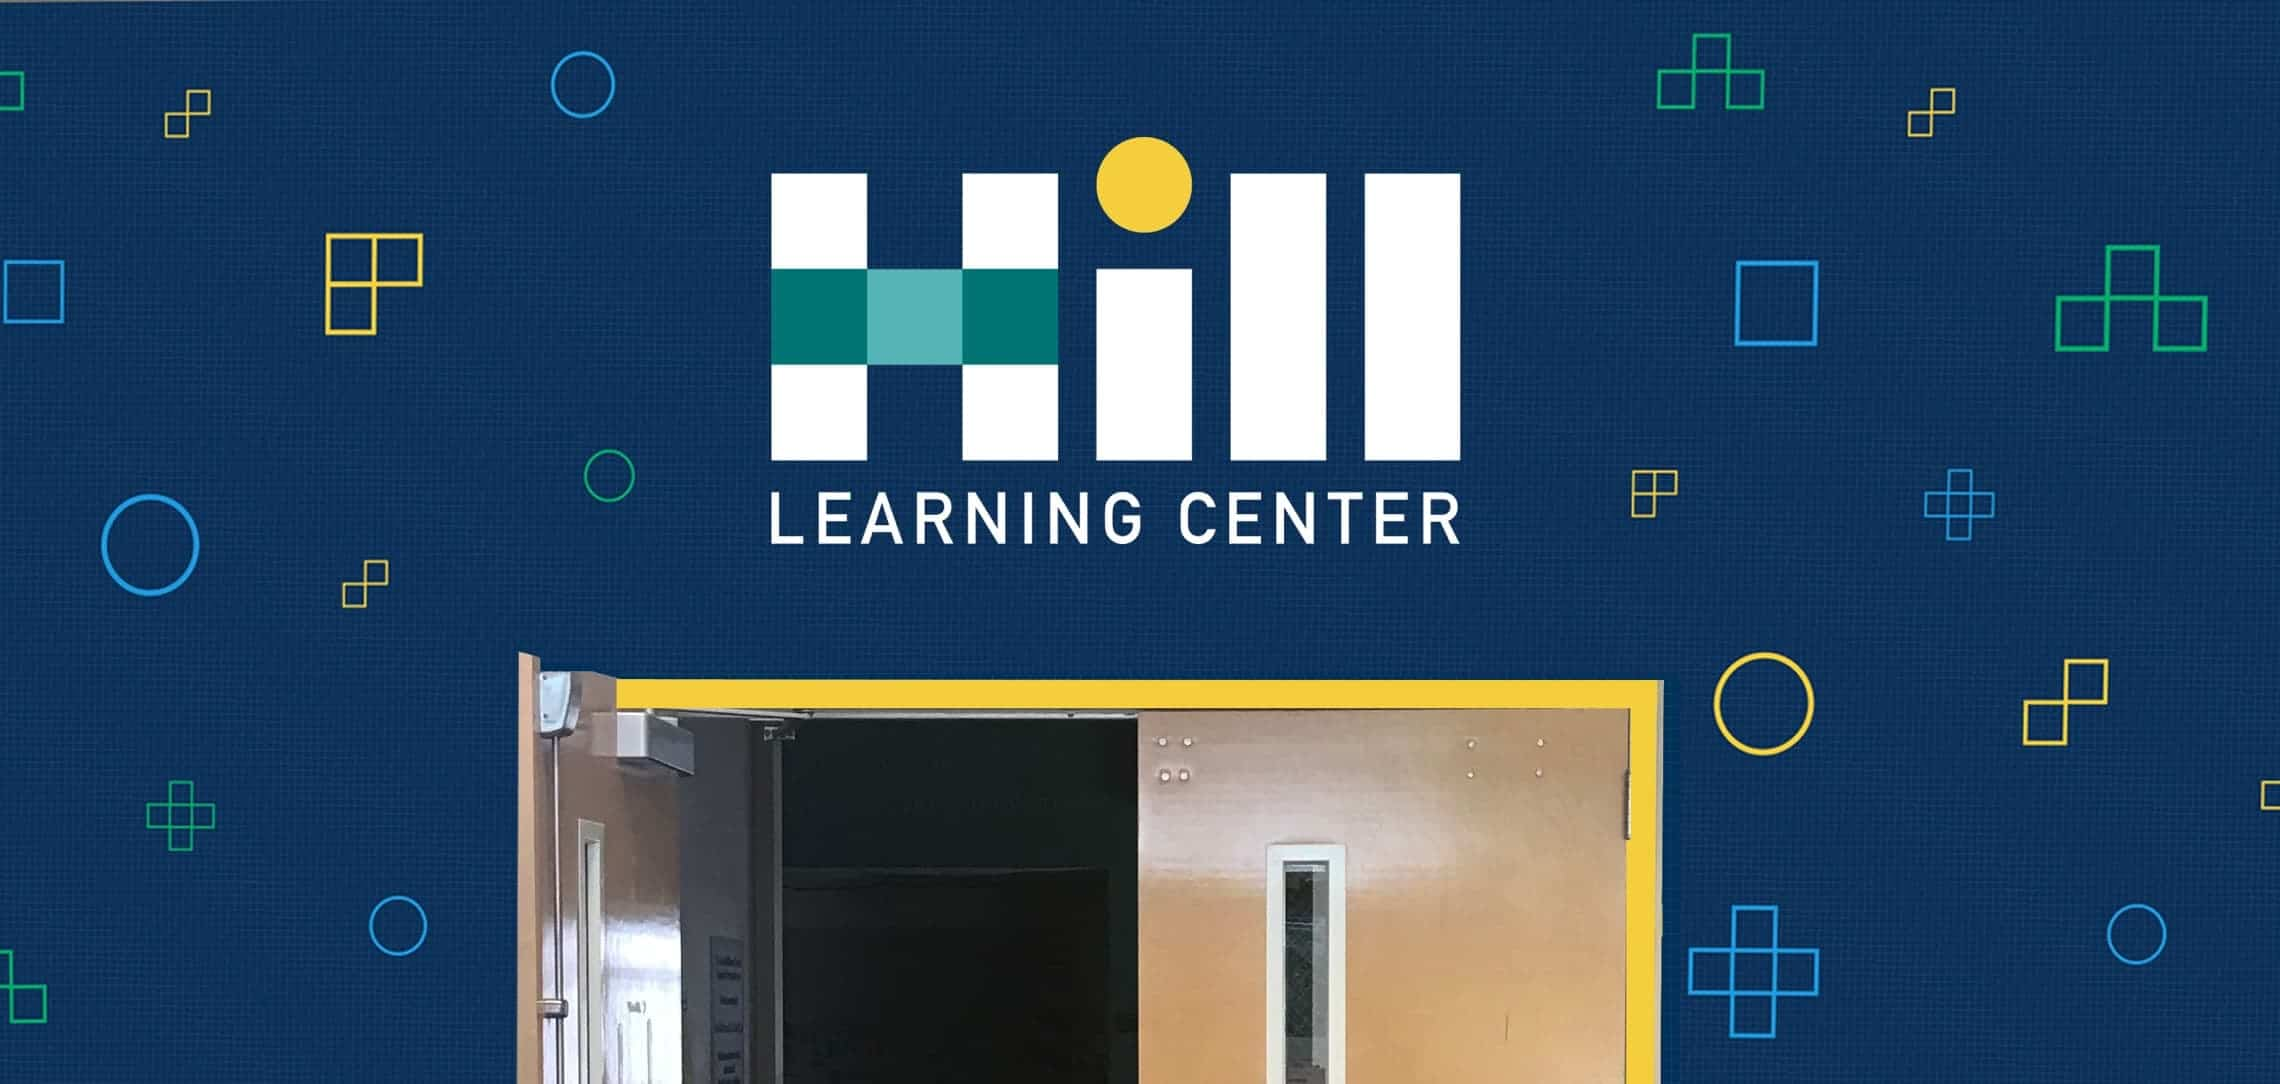 Hill Learning Center hall sign